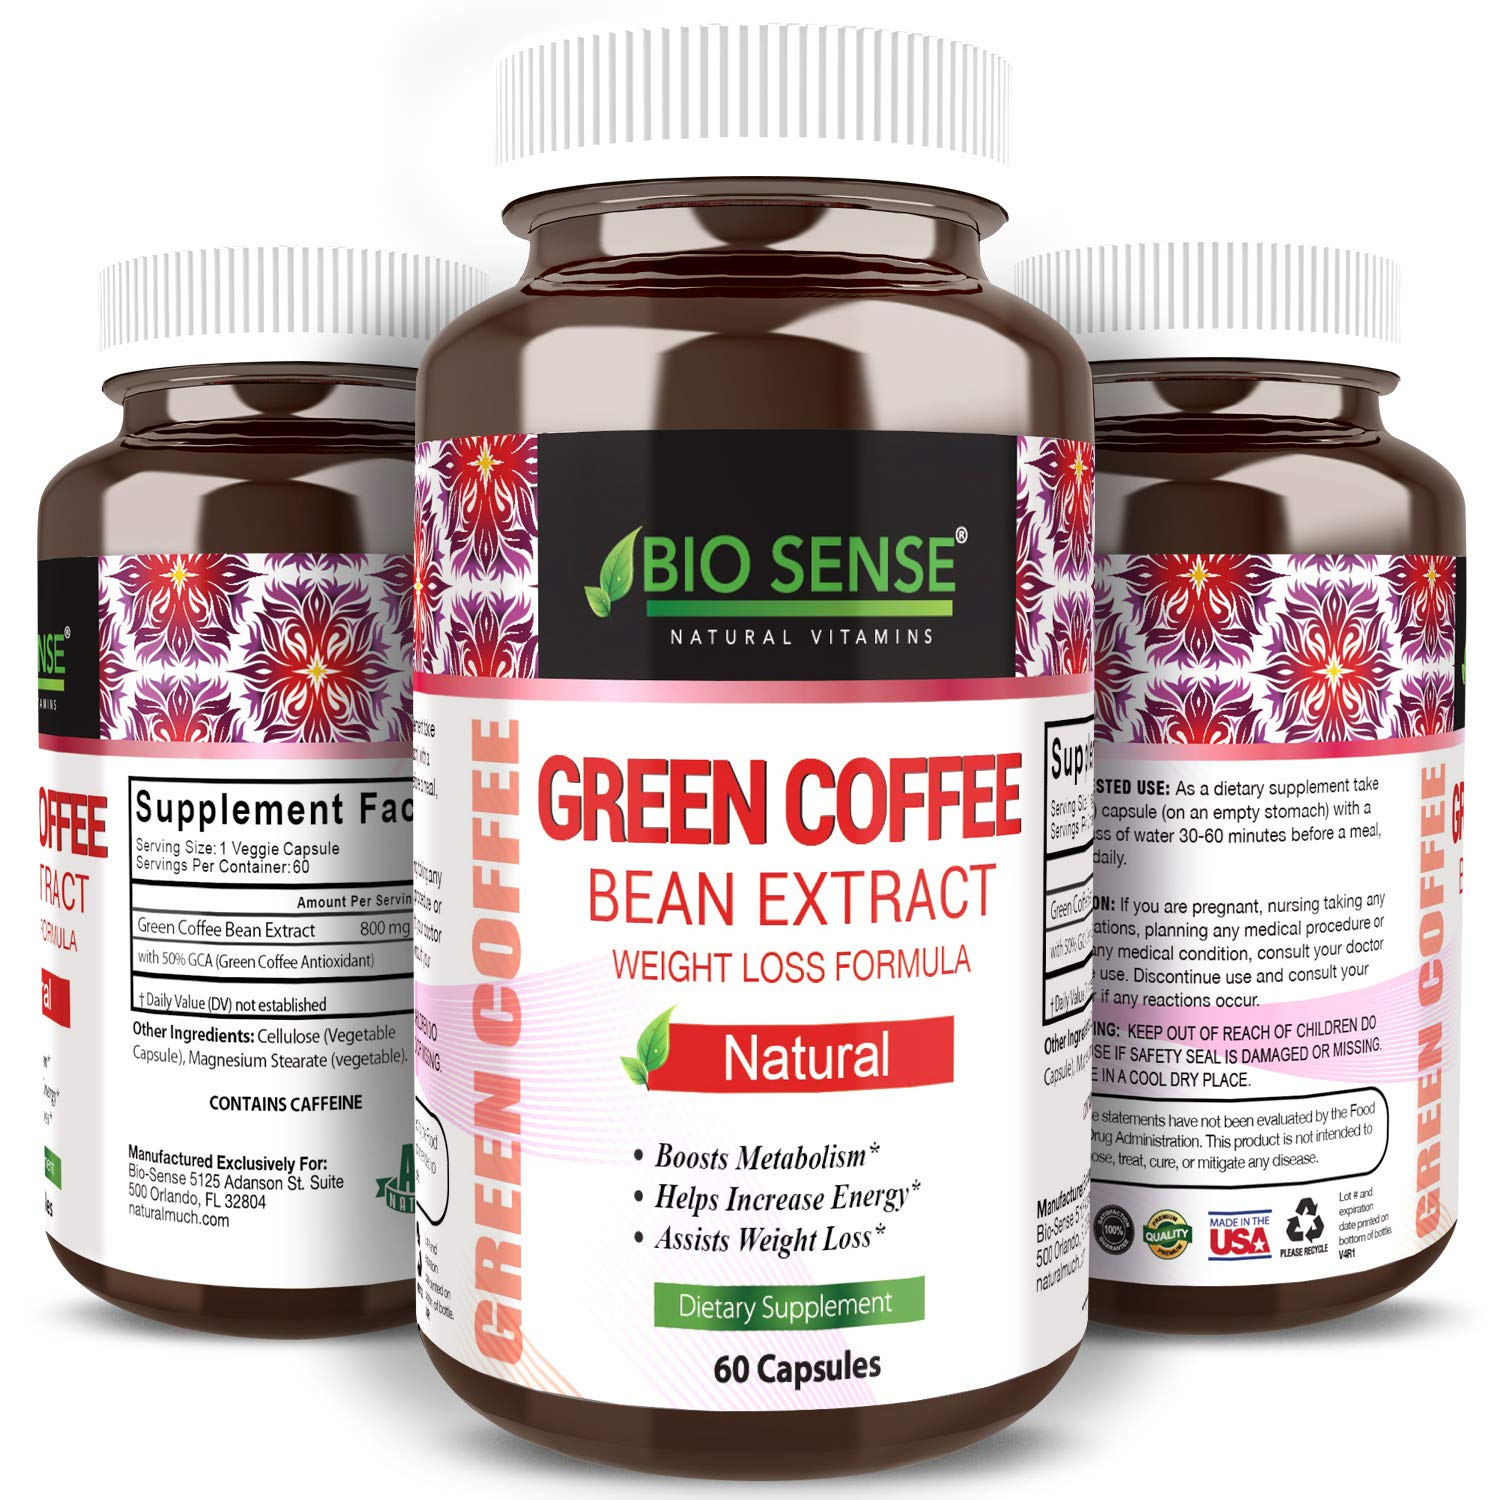 Bio Sense Best Pure Green Coffee Bean Weight Loss Supplement Extra Strength Fat Burner Formula for Women and Men Pure Diet Pills 800 mg Extract with GCA Metabolism Booster 60 Capsules